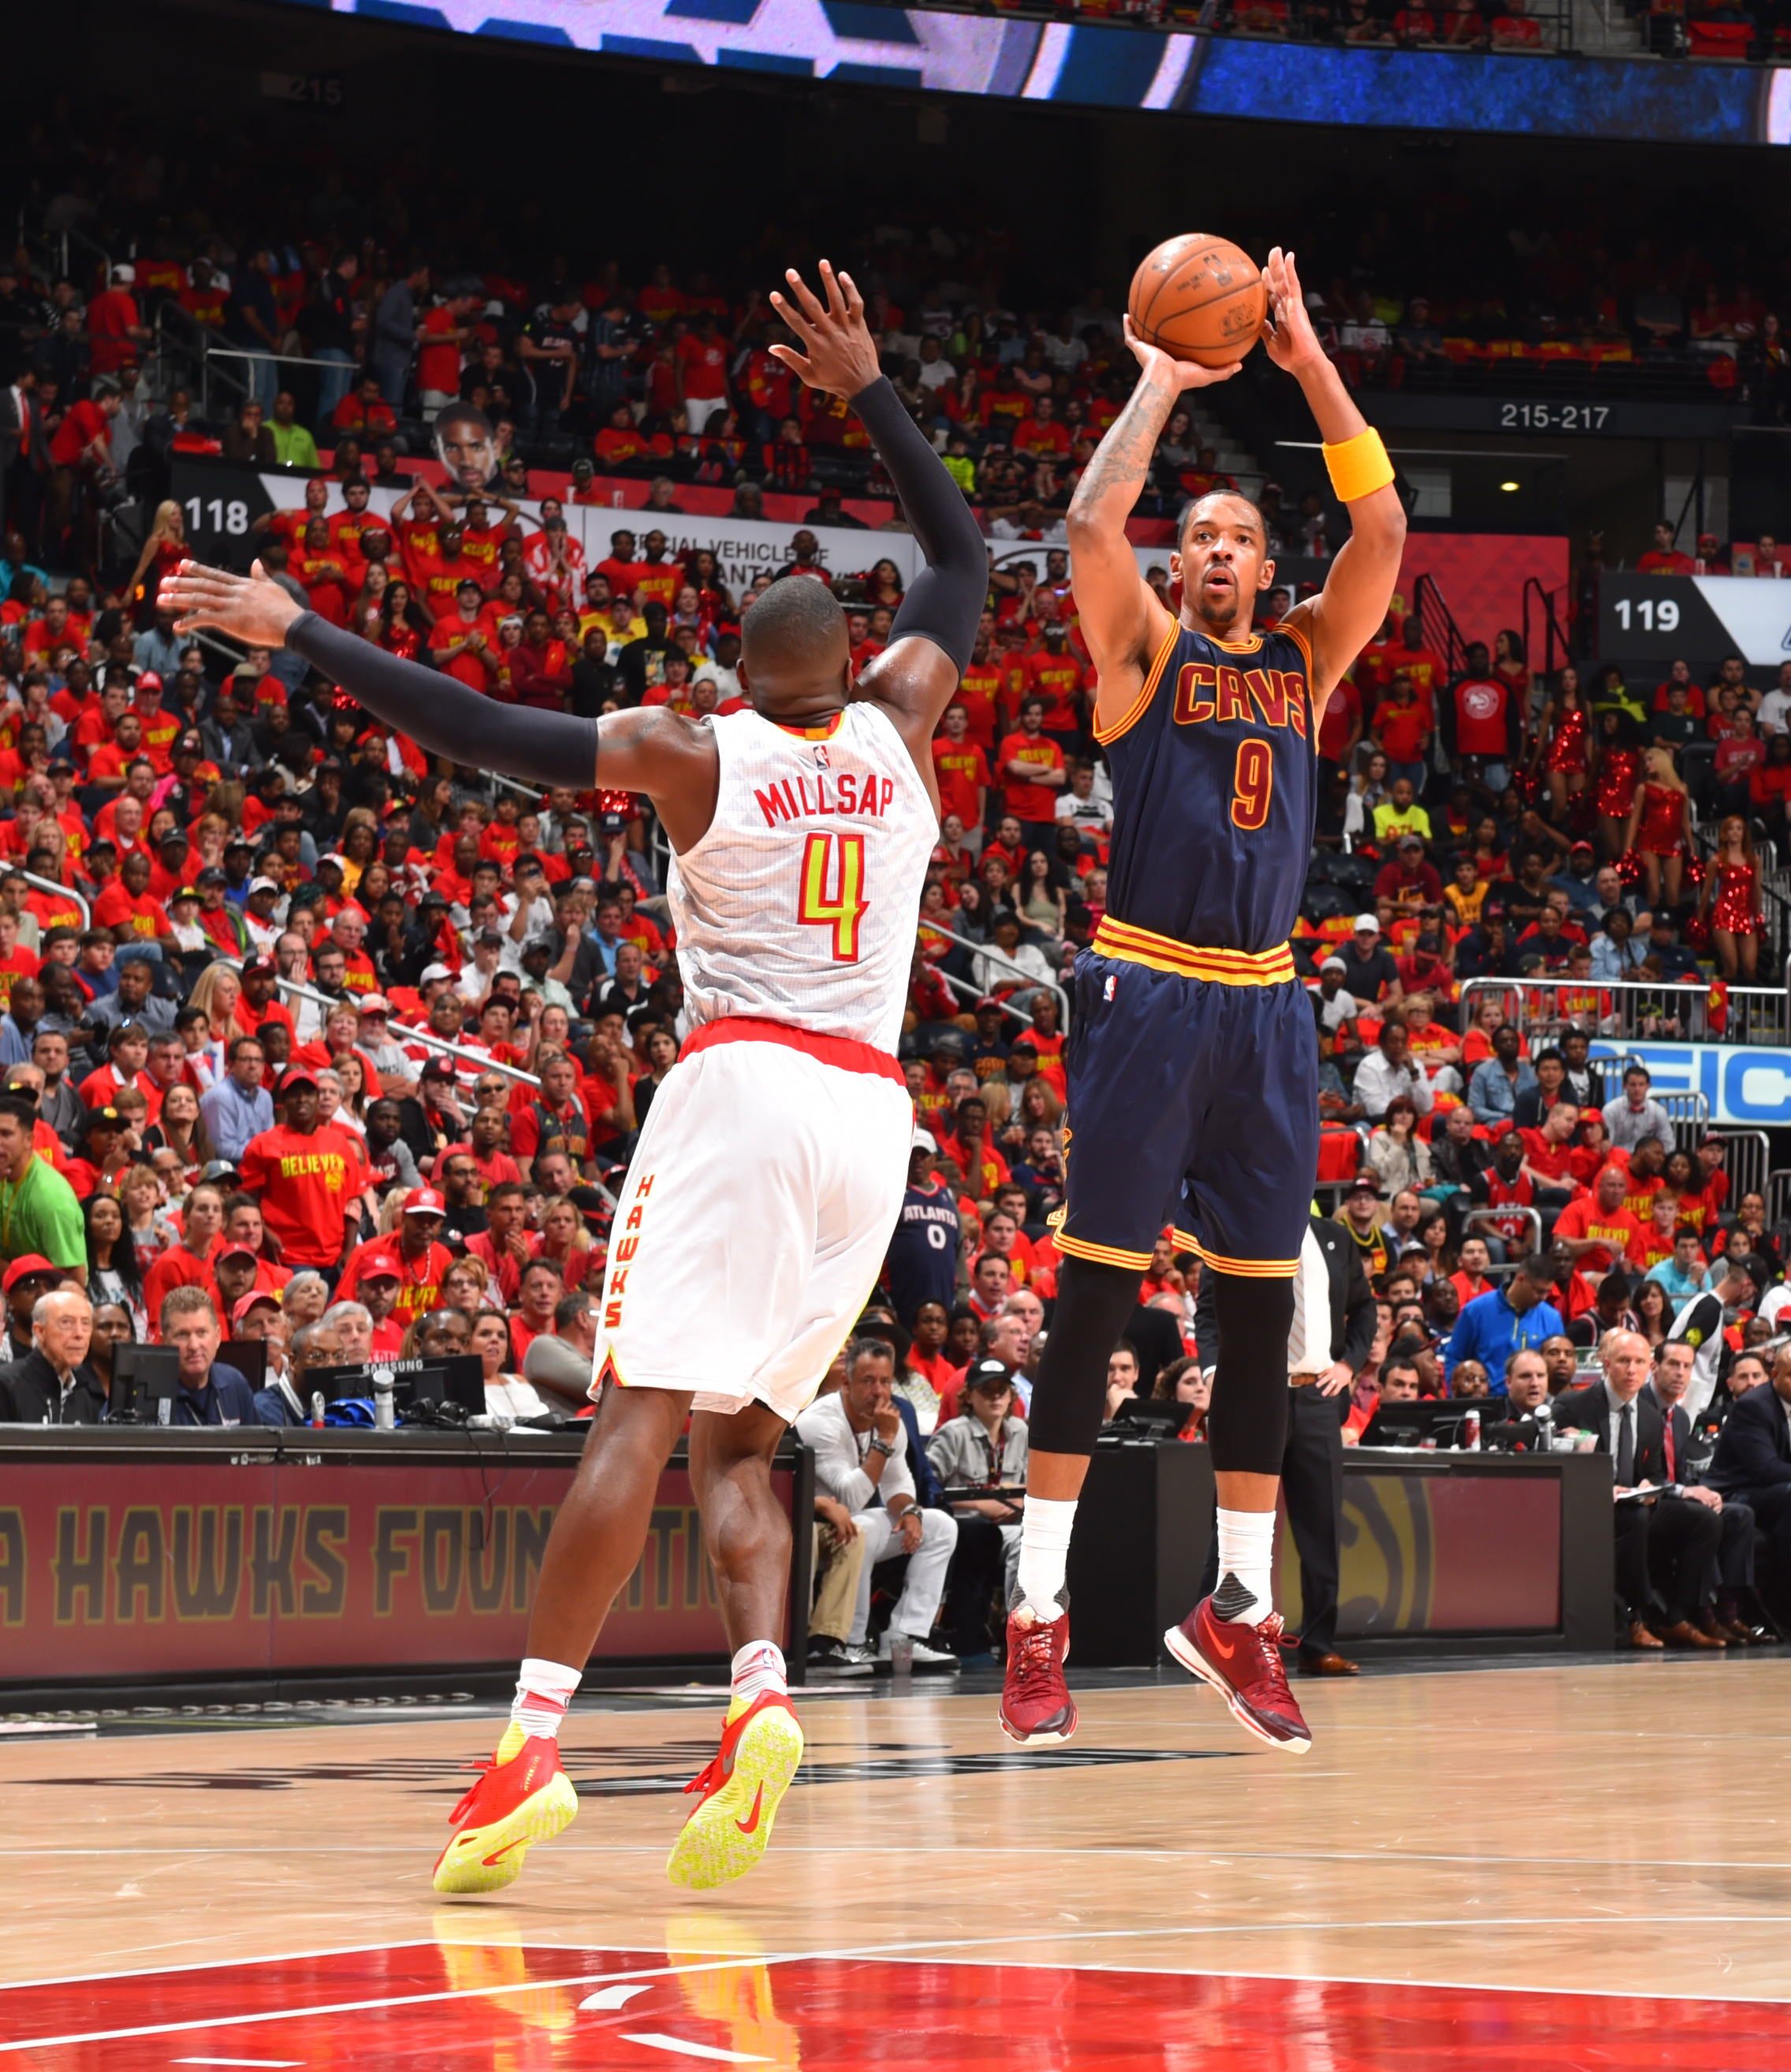 ATLANTA,GA - MAY 6 :  Channing Frye #9 of the Cleveland Cavaliers shoots the ball against the Atlanta Hawks during the Eastern Conference Semifinals Game Three on May 6, 2016 at The Philips Arena in Atlanta Georgia (Photo by Jesse D. Garrabrant/NBAE via G